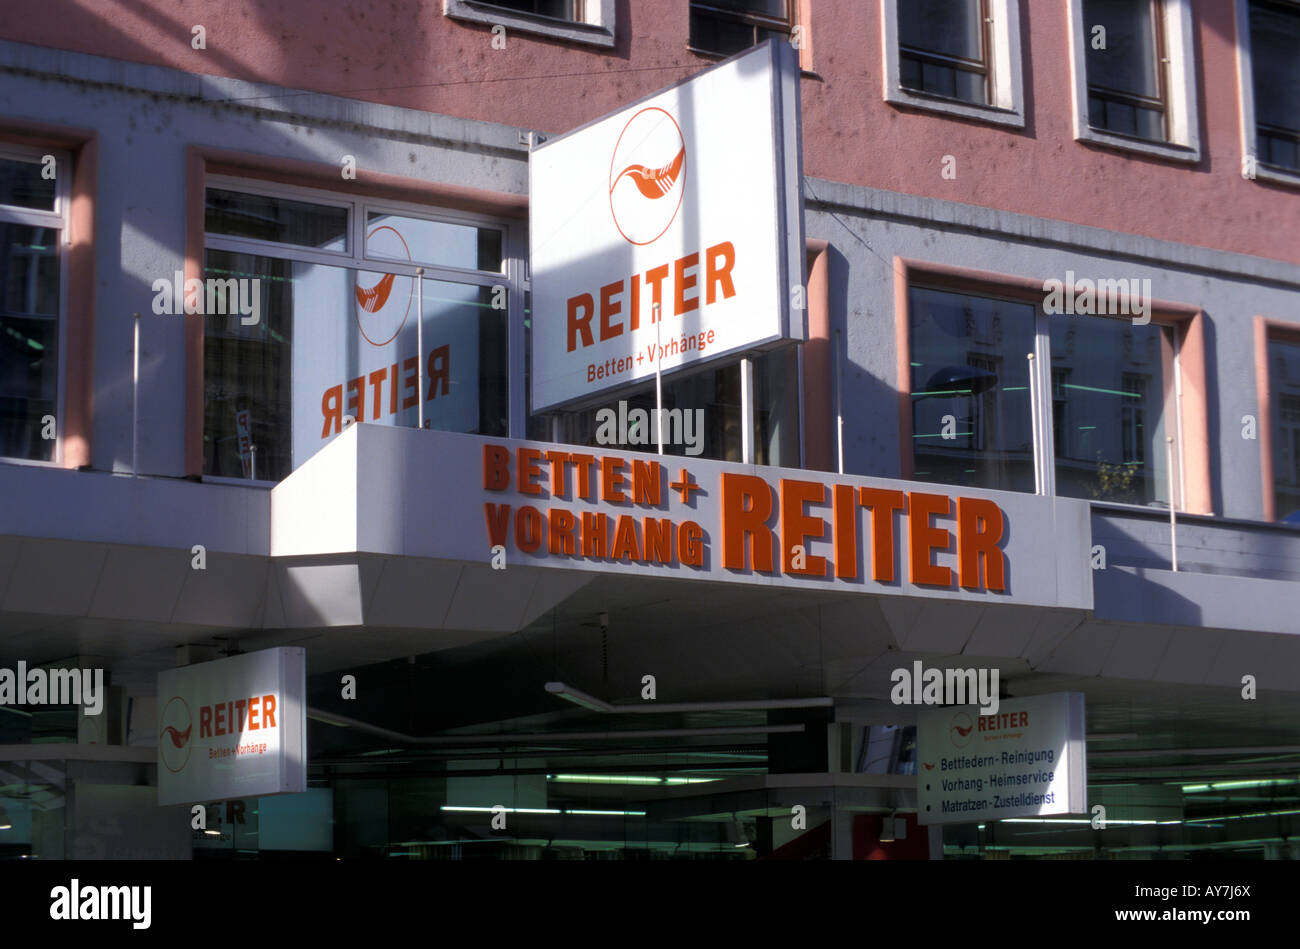 Bettenreiter Shop Stock Photo Alamy - Vorhang Reiter